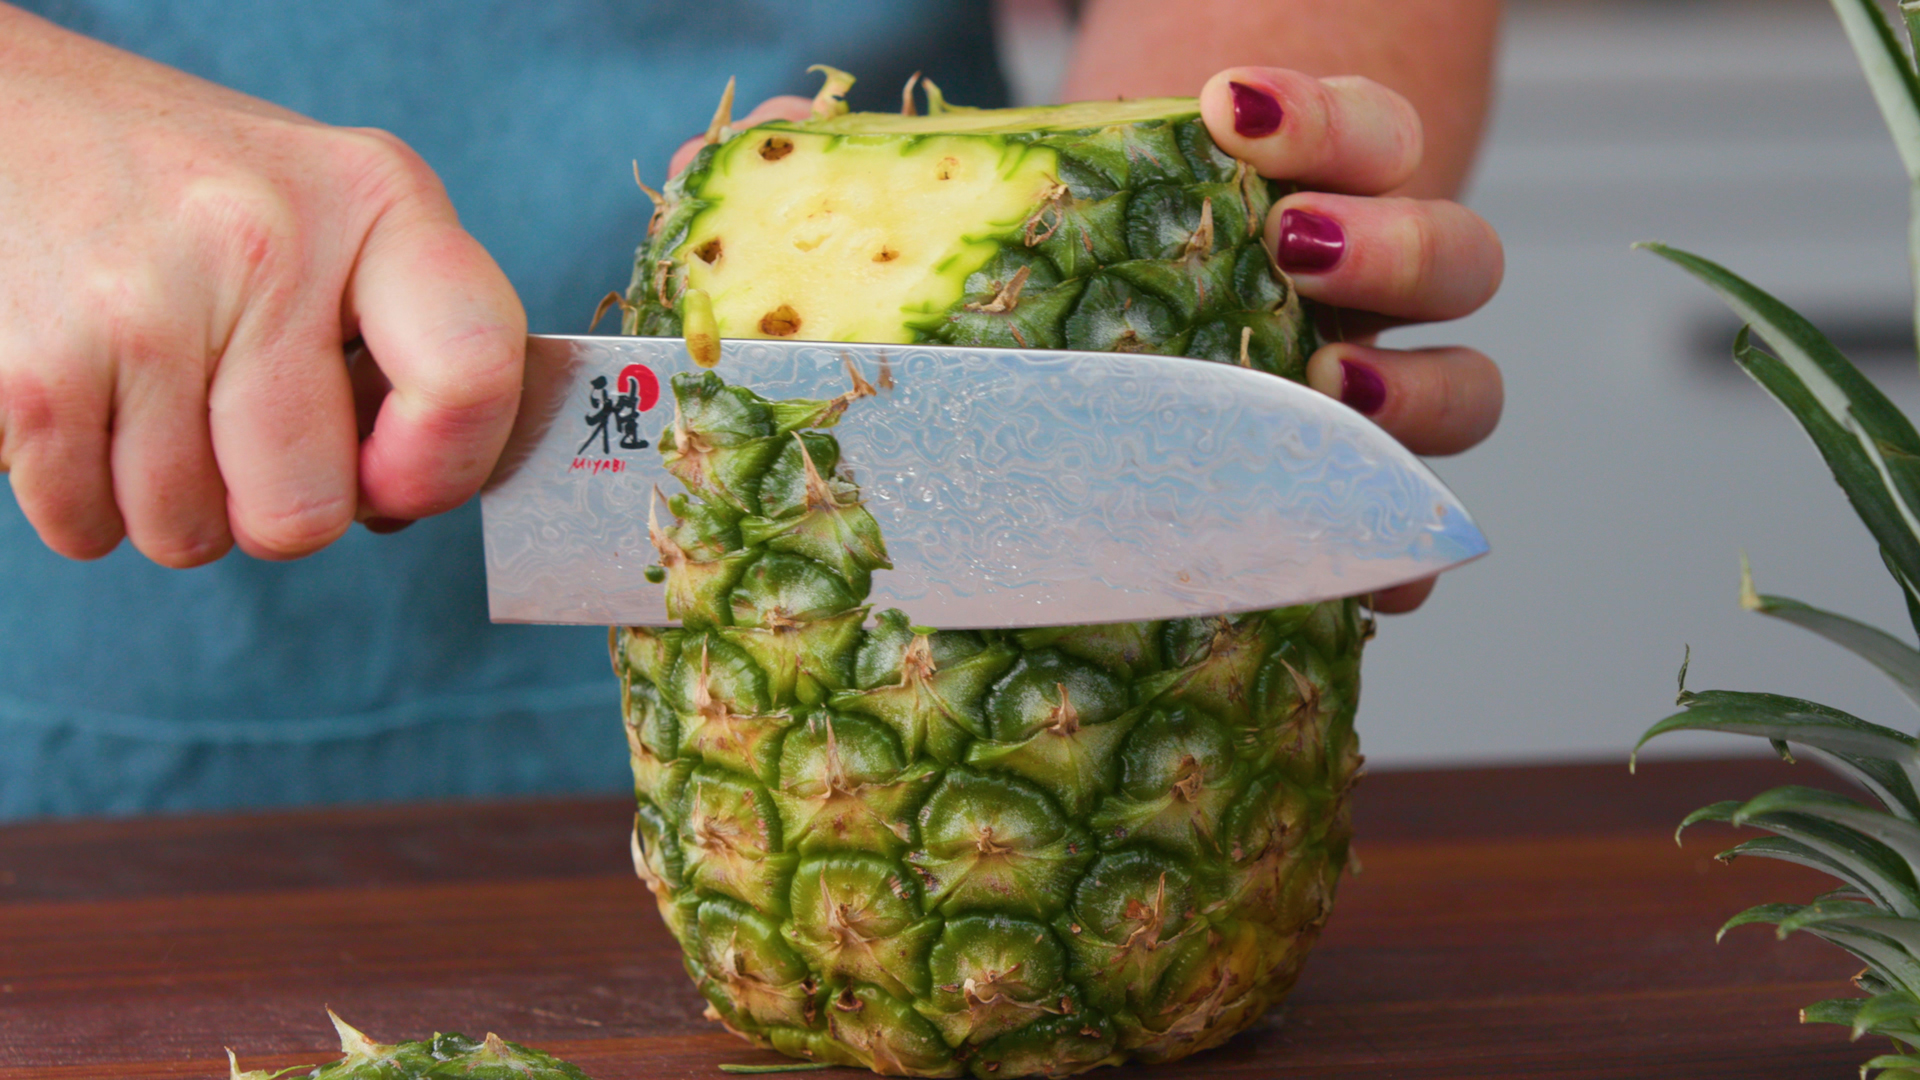 <p>Peeling and Cutting a Pineapple</p>